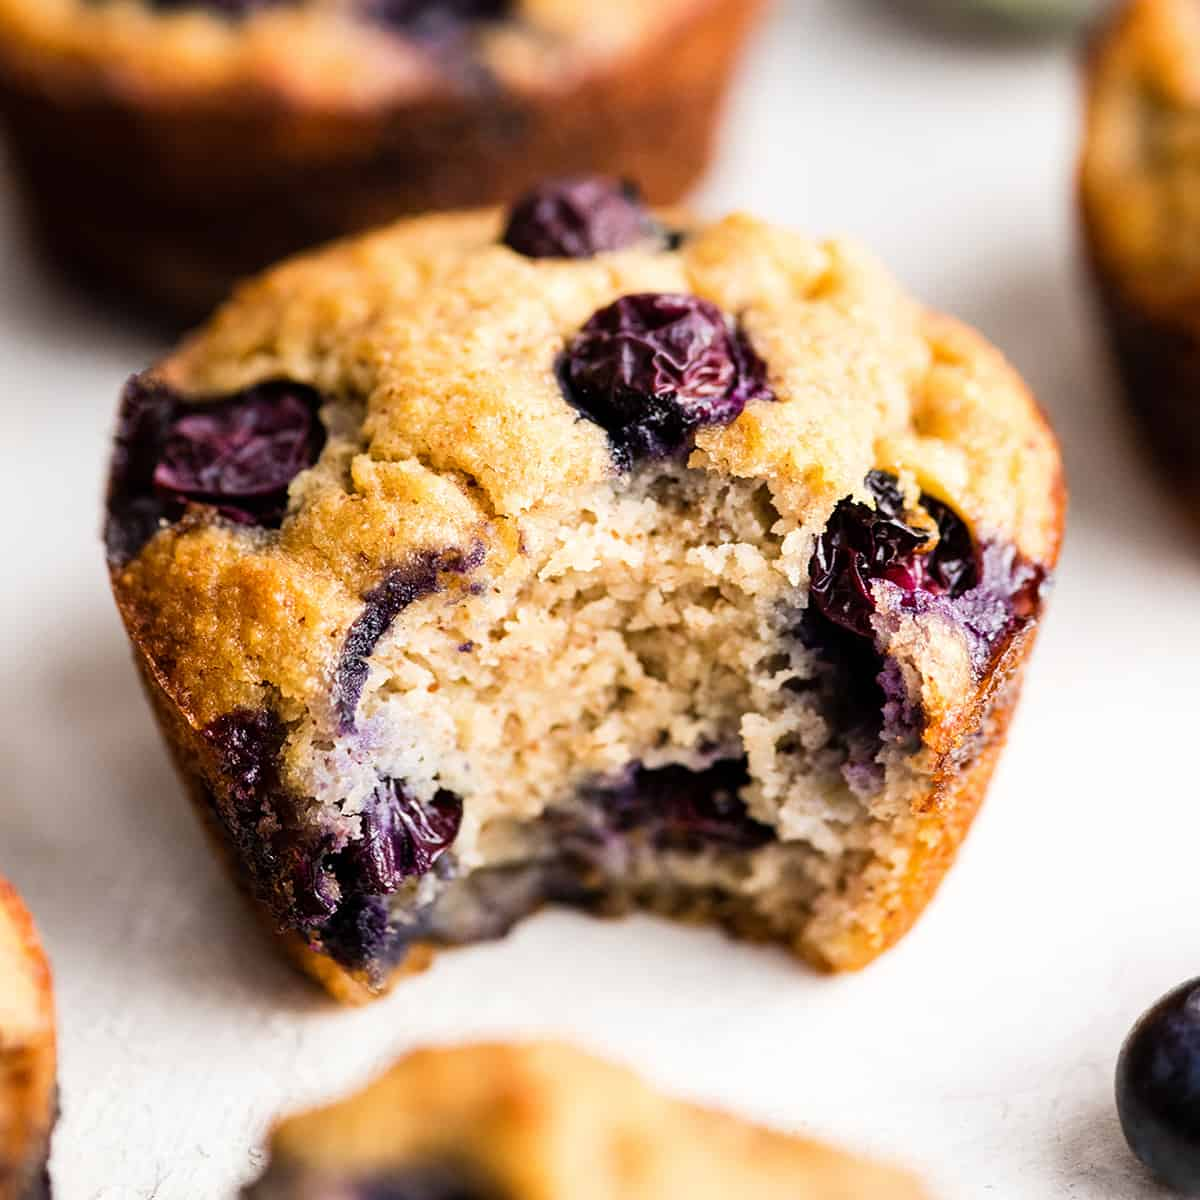 up close photo of a paleo blueberry muffin with a bite taken out of it